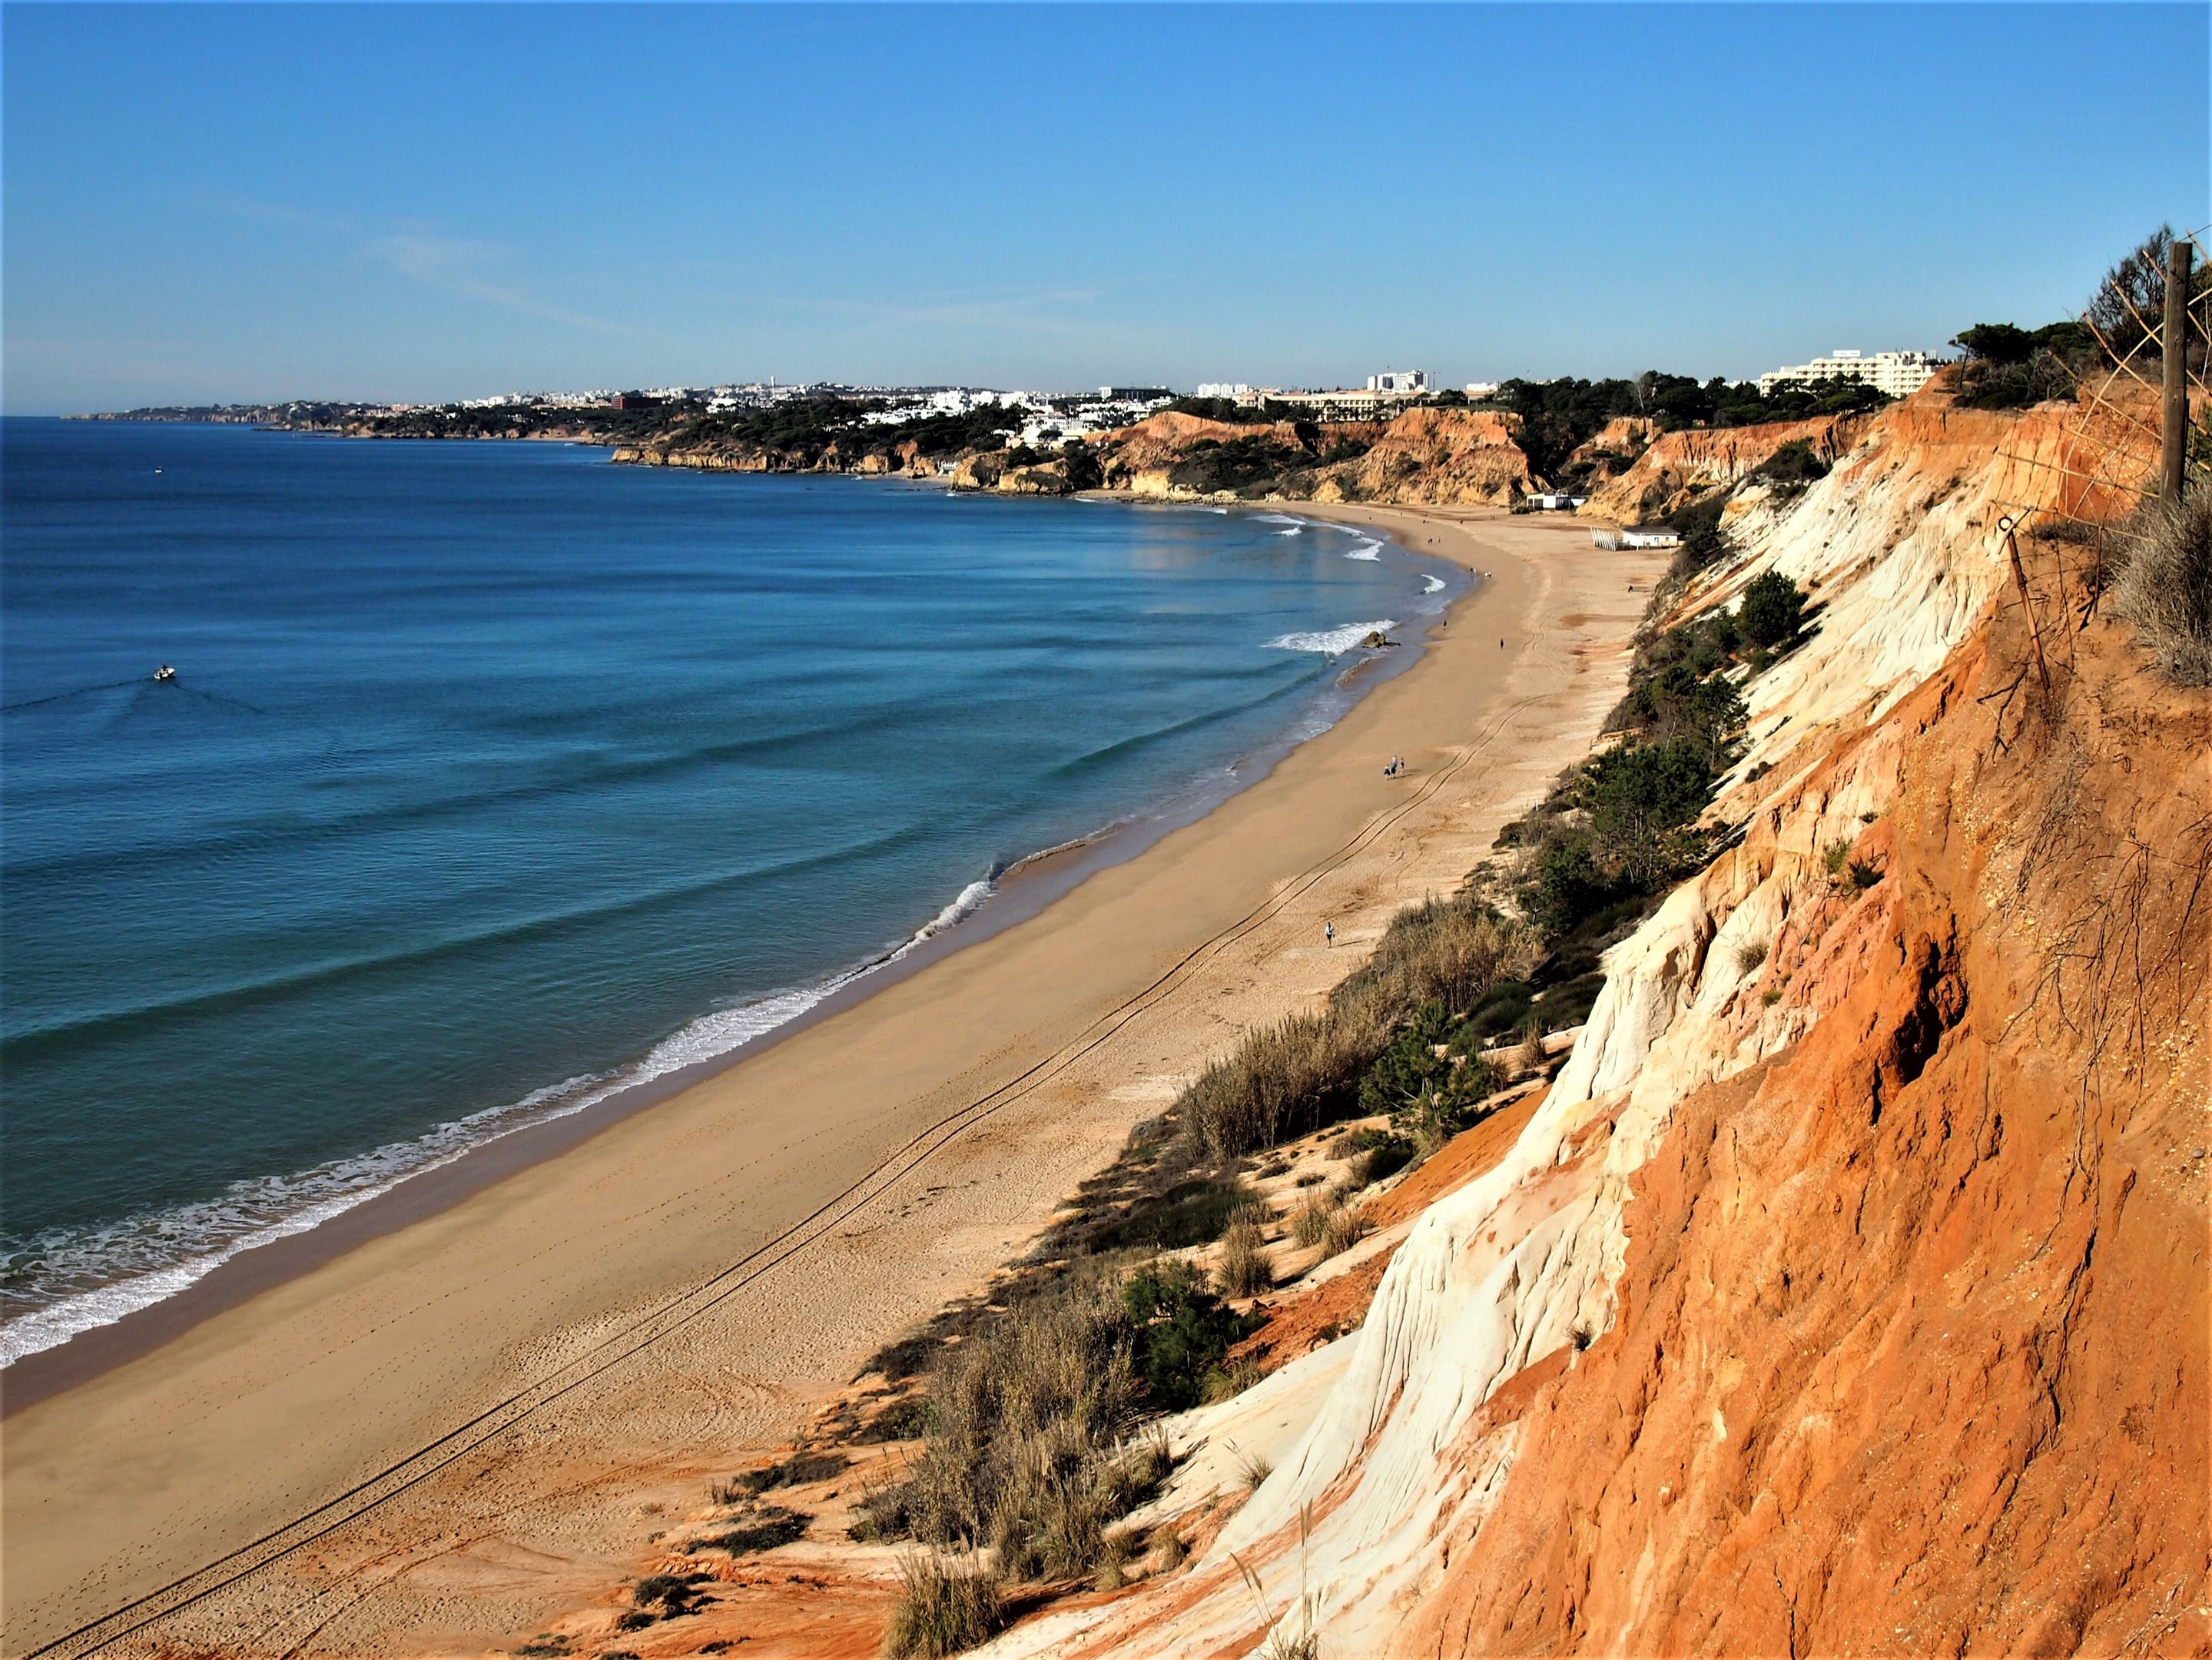 Praia da Falésia, further along the beach looking east towards Albufeira